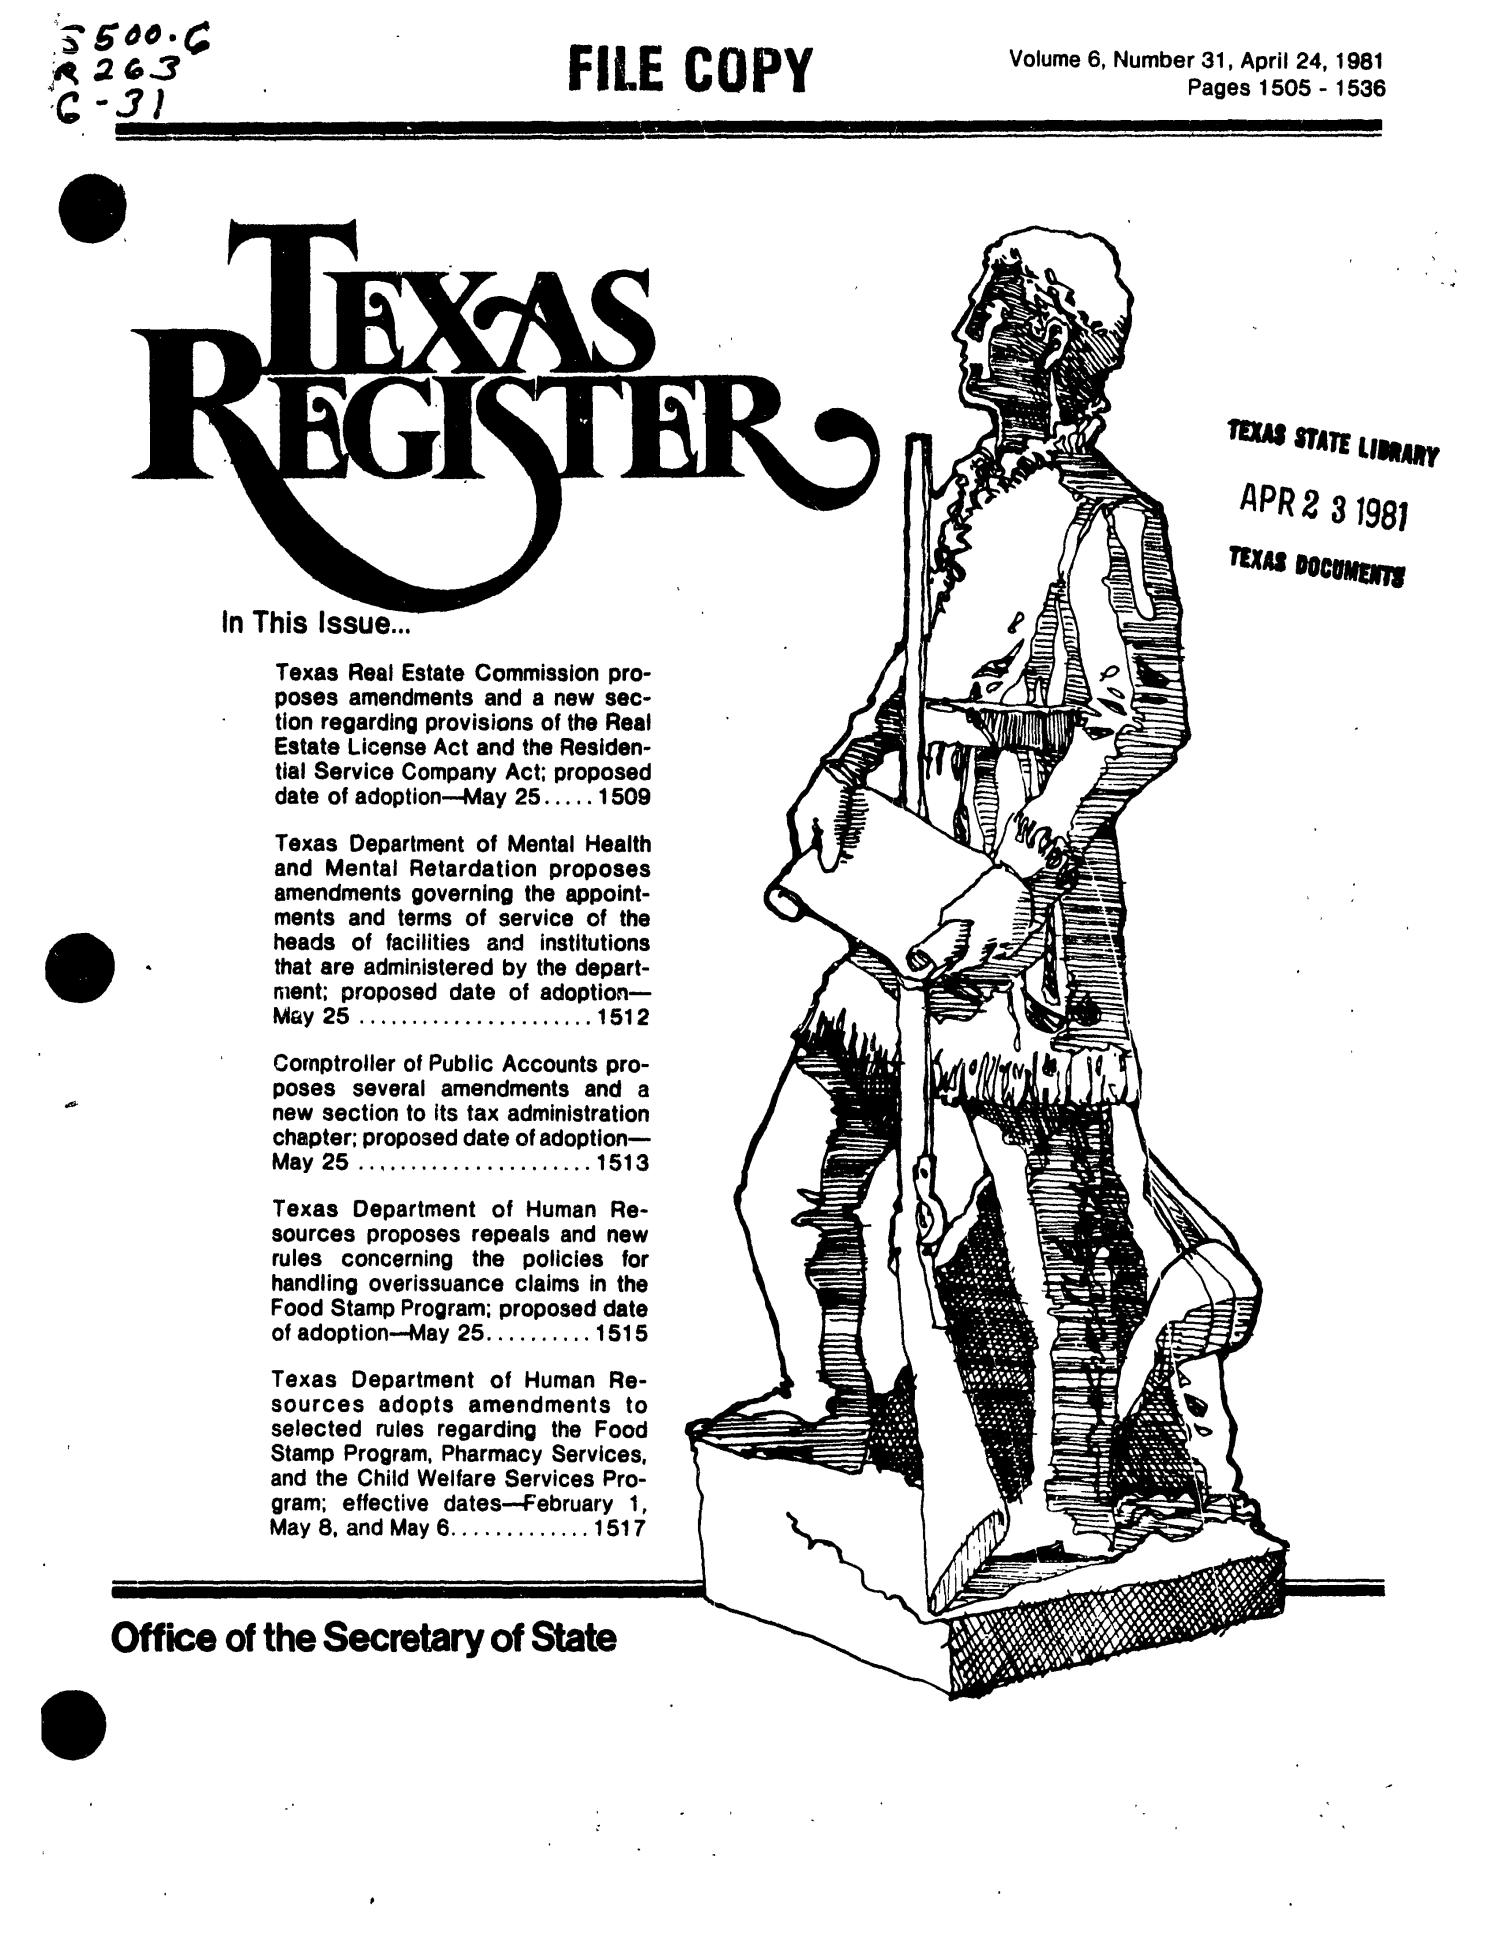 Texas Register, Volume 6, Number 31, Pages 1505-1536